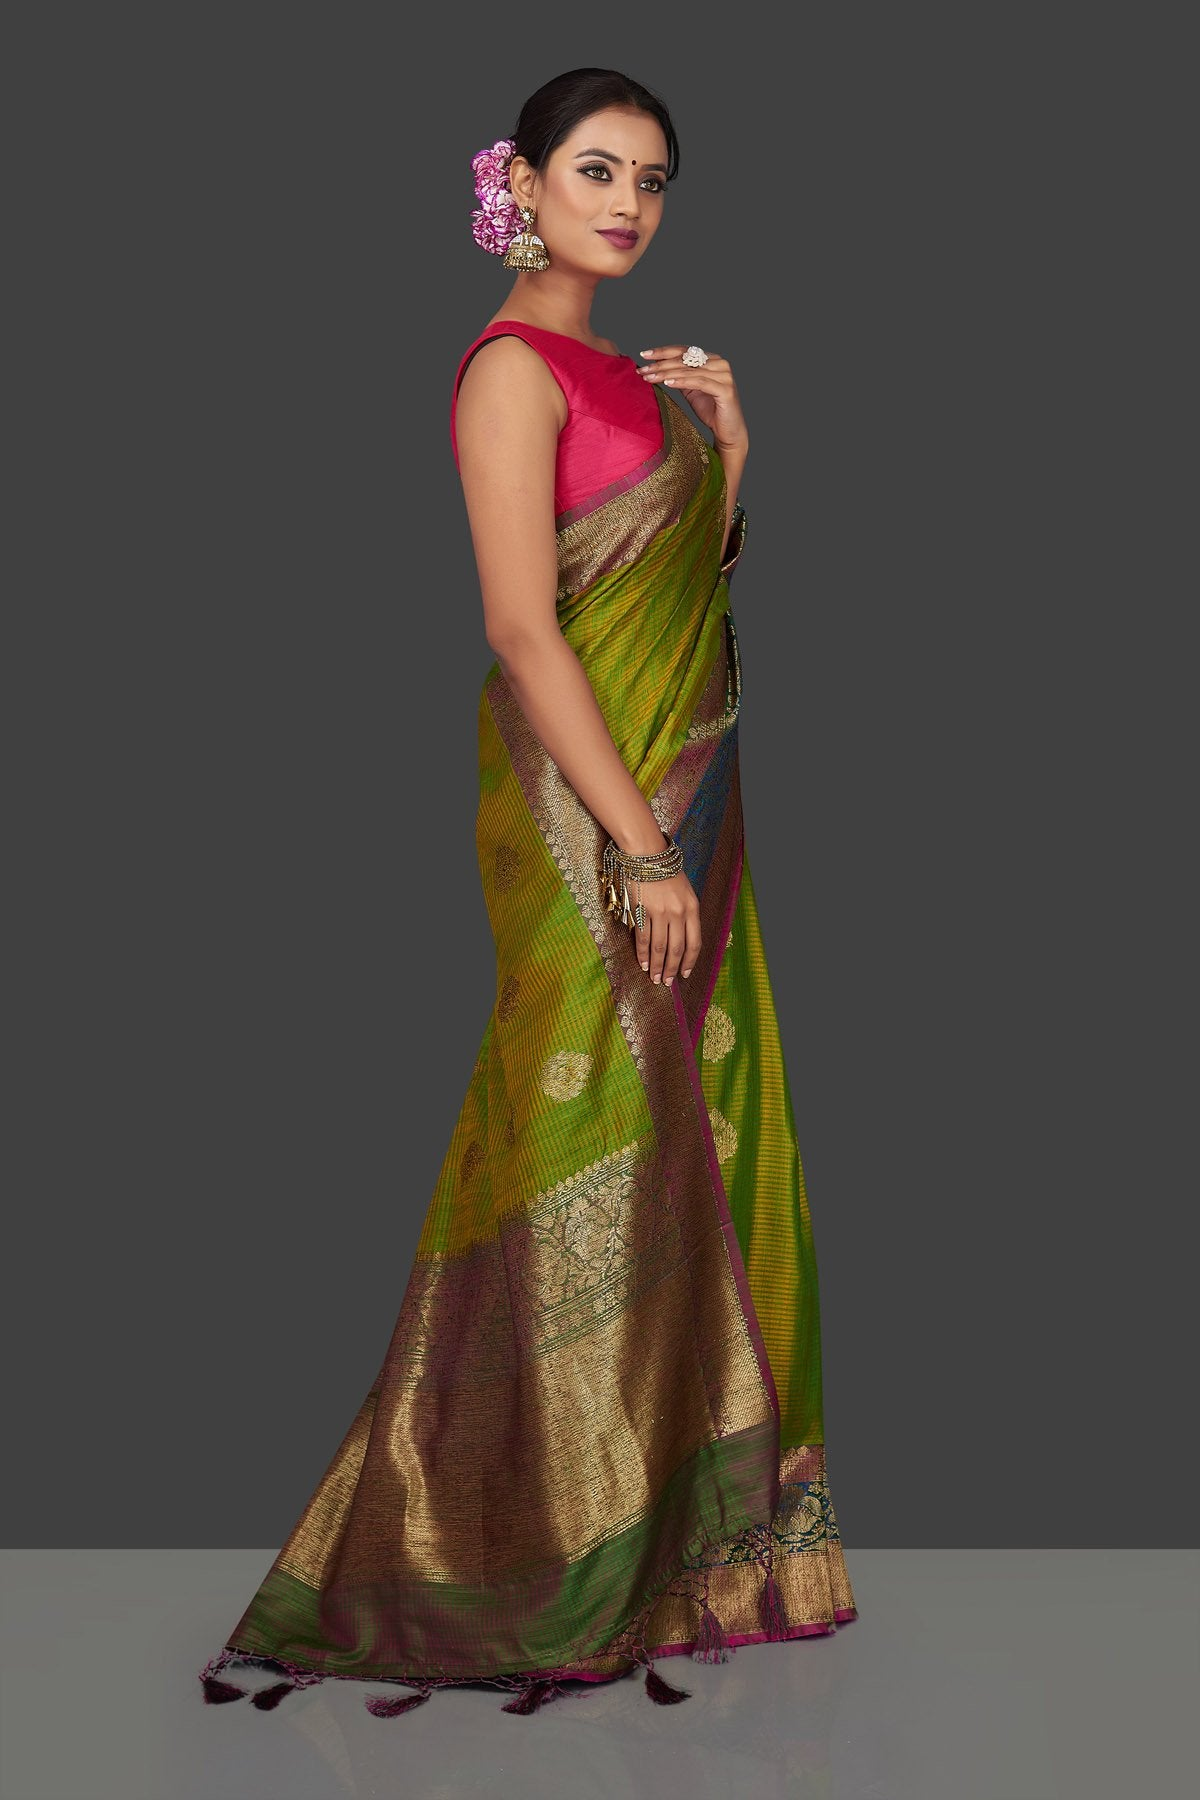 Buy lovely yellowish green tassar Banarasi saree online in USA with antique zari pallu. Garner compliments on weddings and special occasions with exquisite Banarasi sarees, handwoven silk sarees, tussar sarees from Pure Elegance Indian fashion store in USA.-right